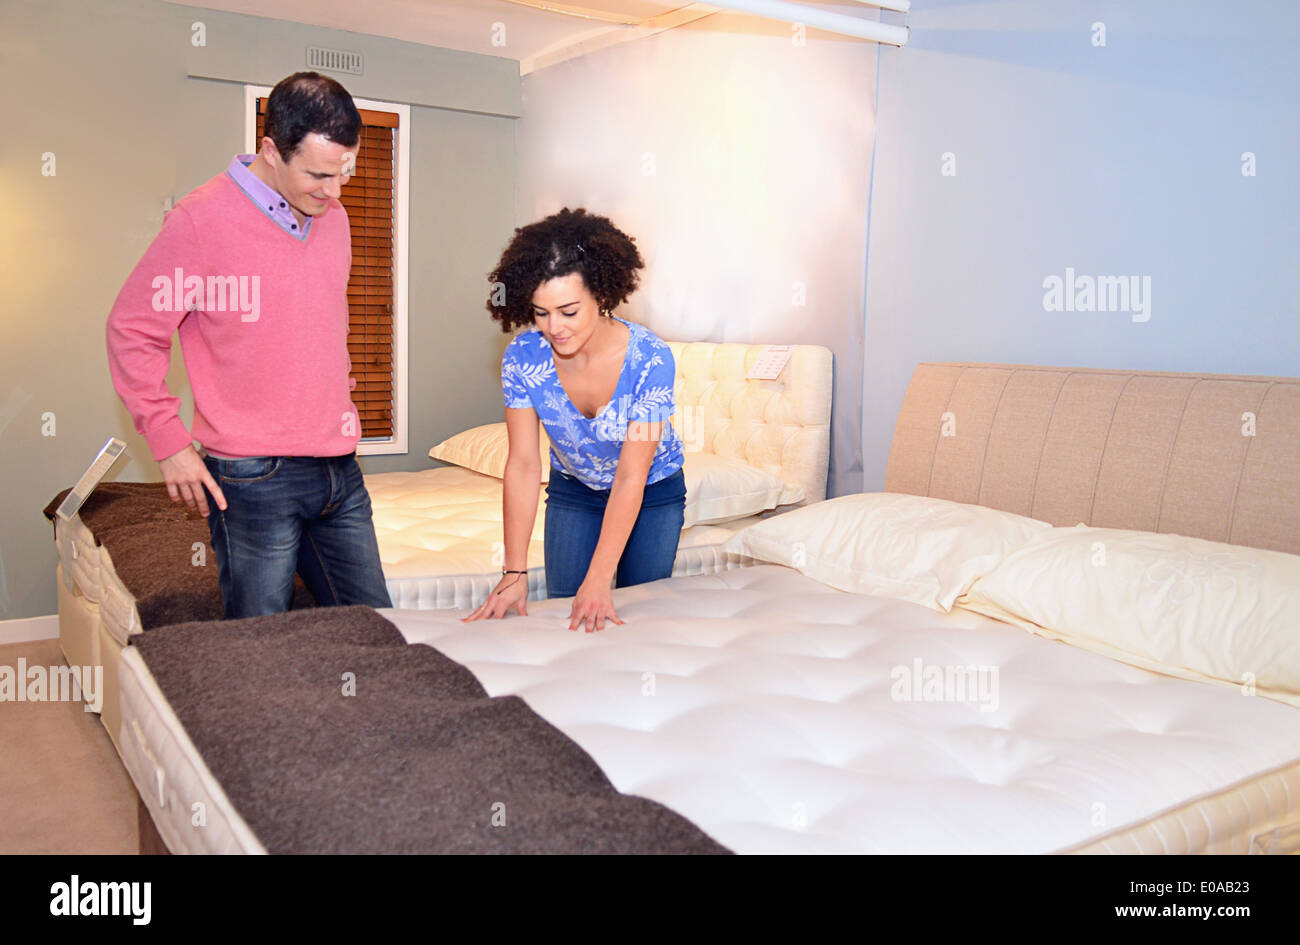 Couple testing beds in furniture shop showroom - Stock Image